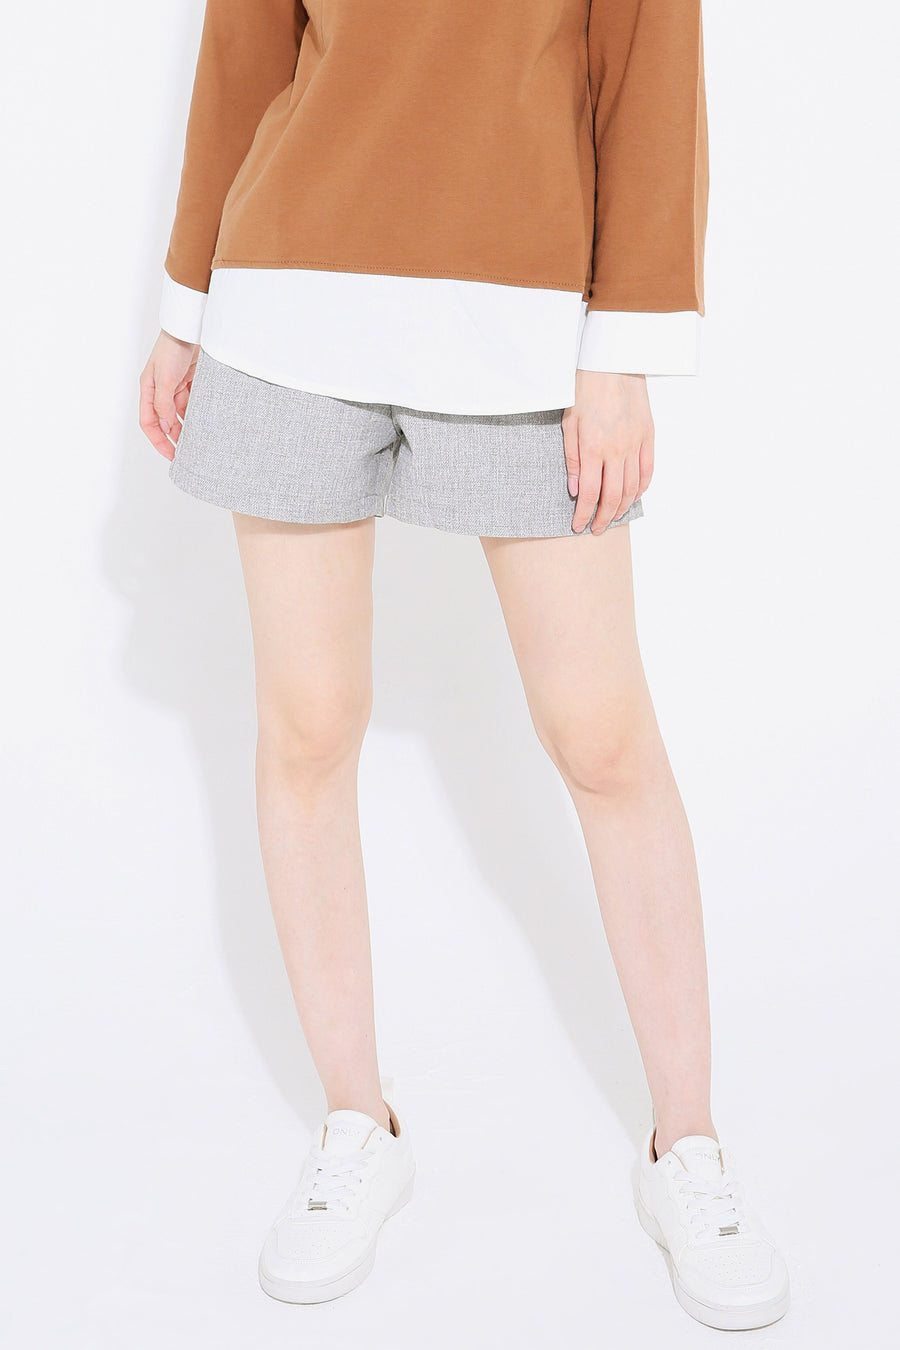 Ring Short Pants 2809 - ample-couture